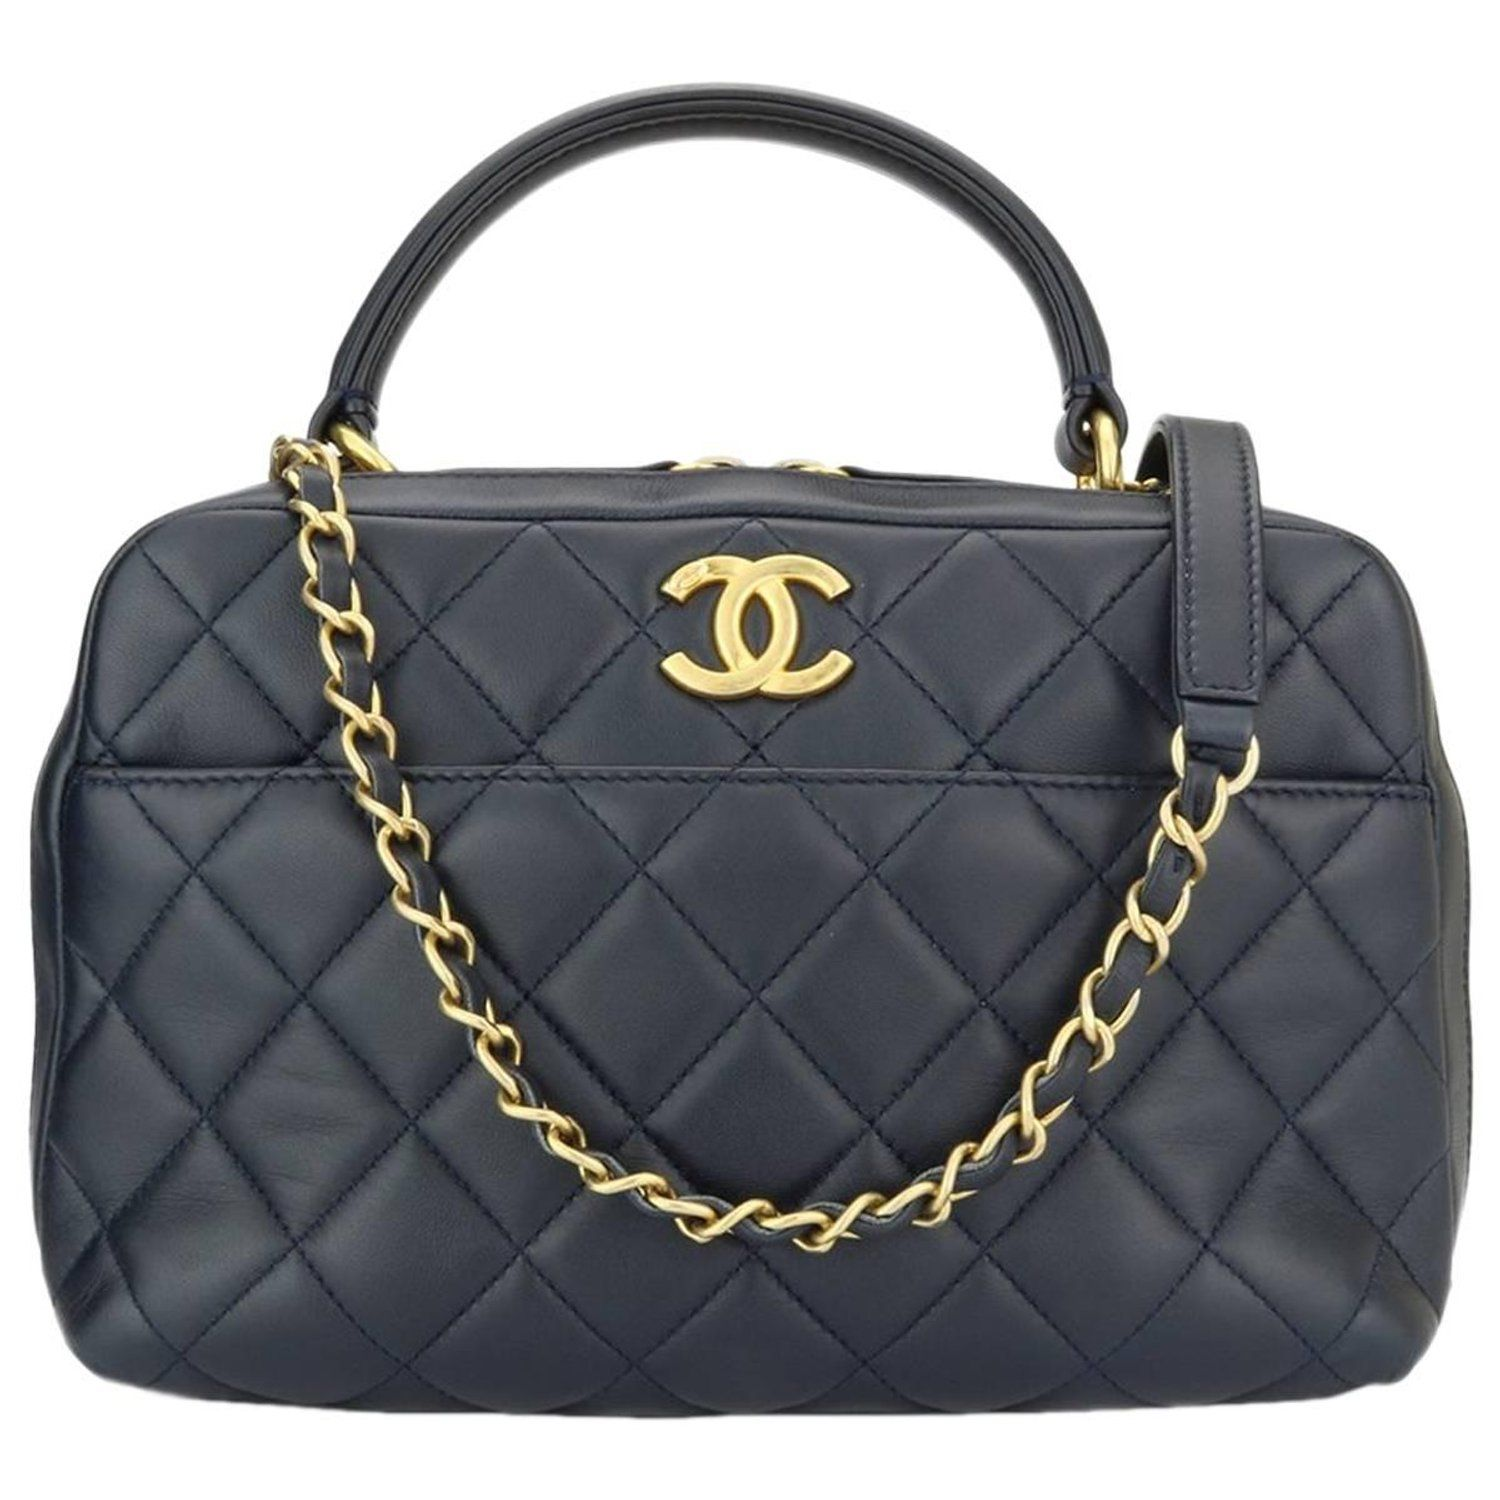 85b25462de69 Chanel Harlequin Vintage Flap Bag in 2019 | My 1stdibs Favorites | Bags,  Chanel, Leather tassel